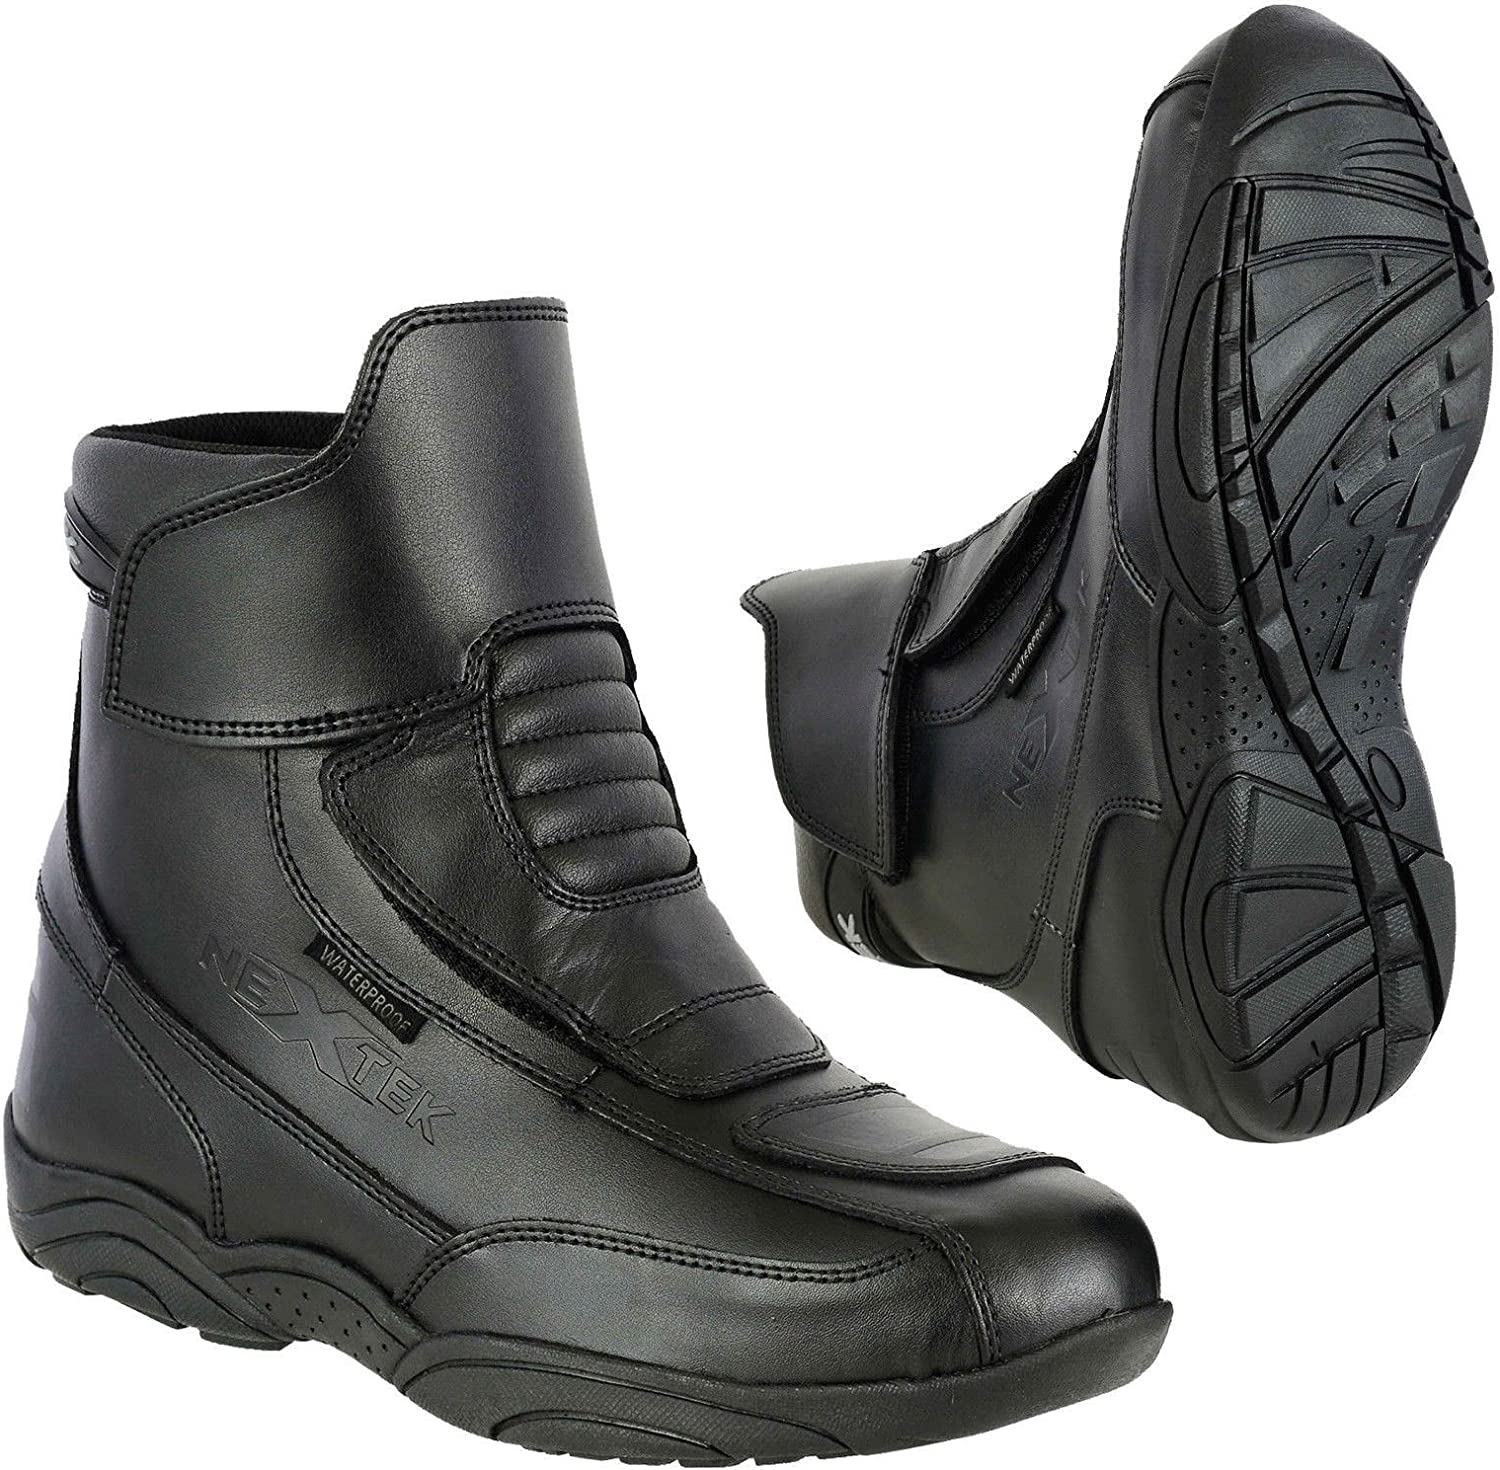 Profirst Global Motorbike Boots Motorcycle Waterproof Riding Shoes Short Ankle Black UK 10 Touring Boot for Mens Boy